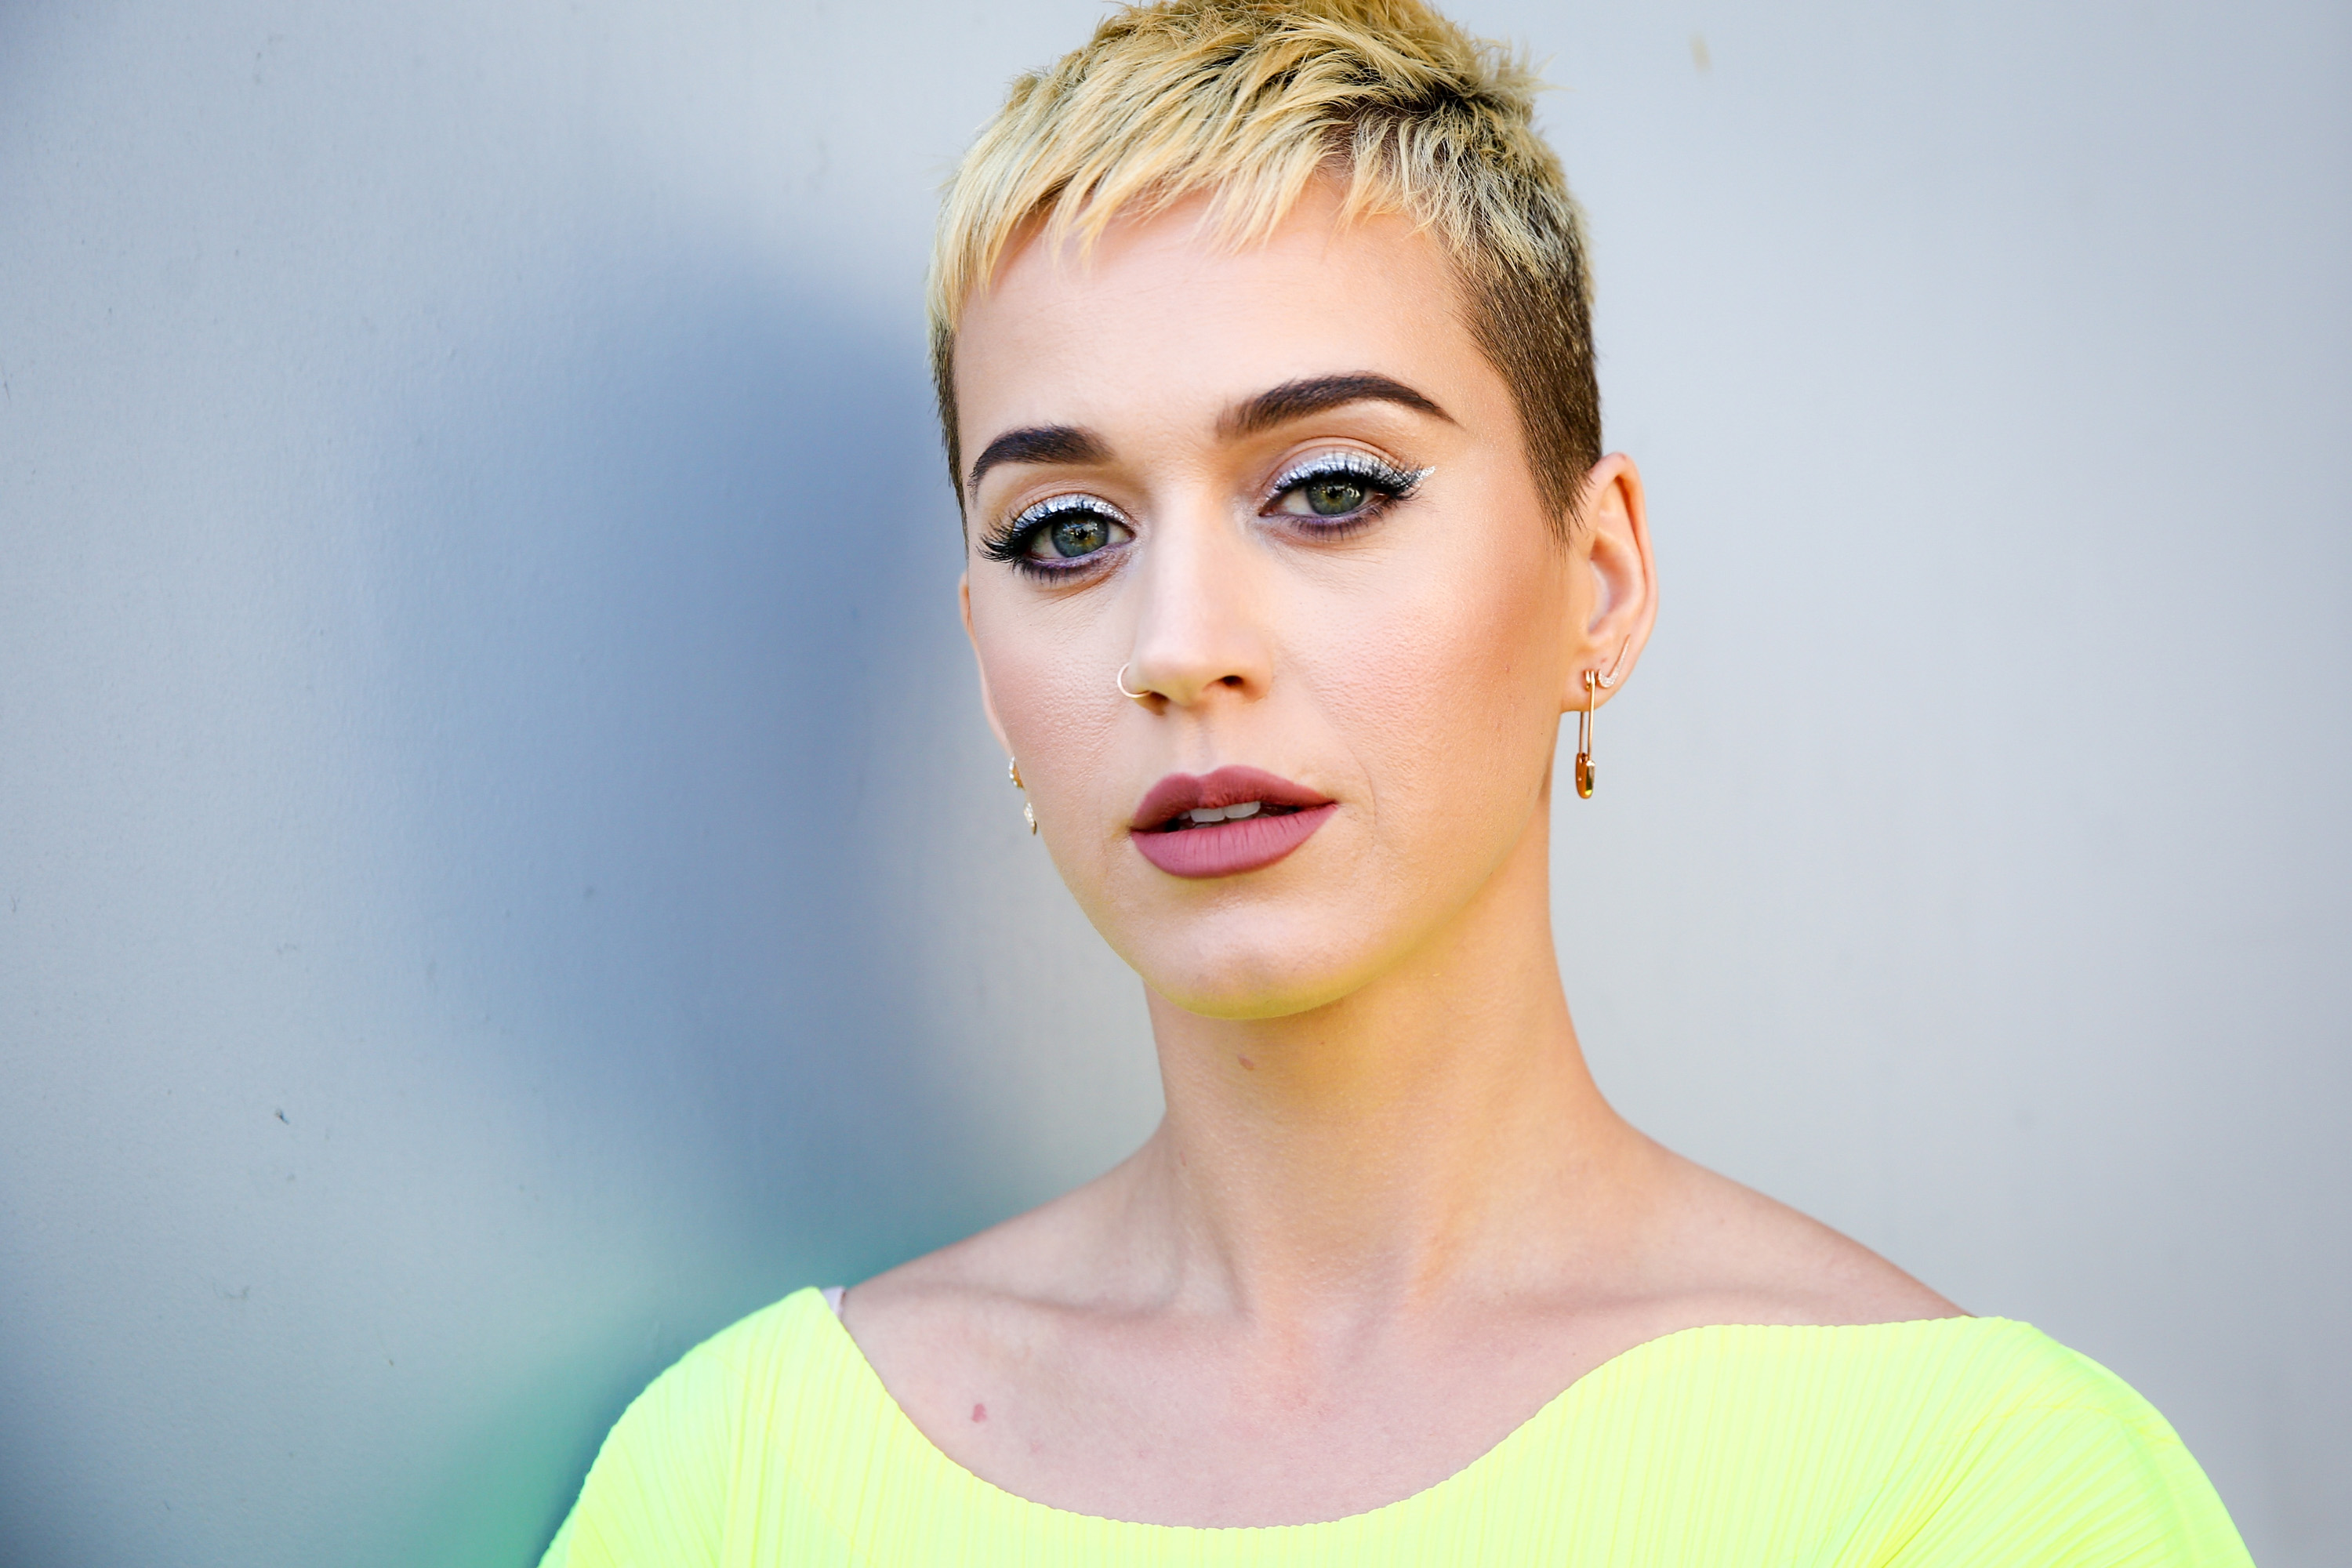 Blonde Katy Perry Pics - Hot Blonde Katy Perry Pics